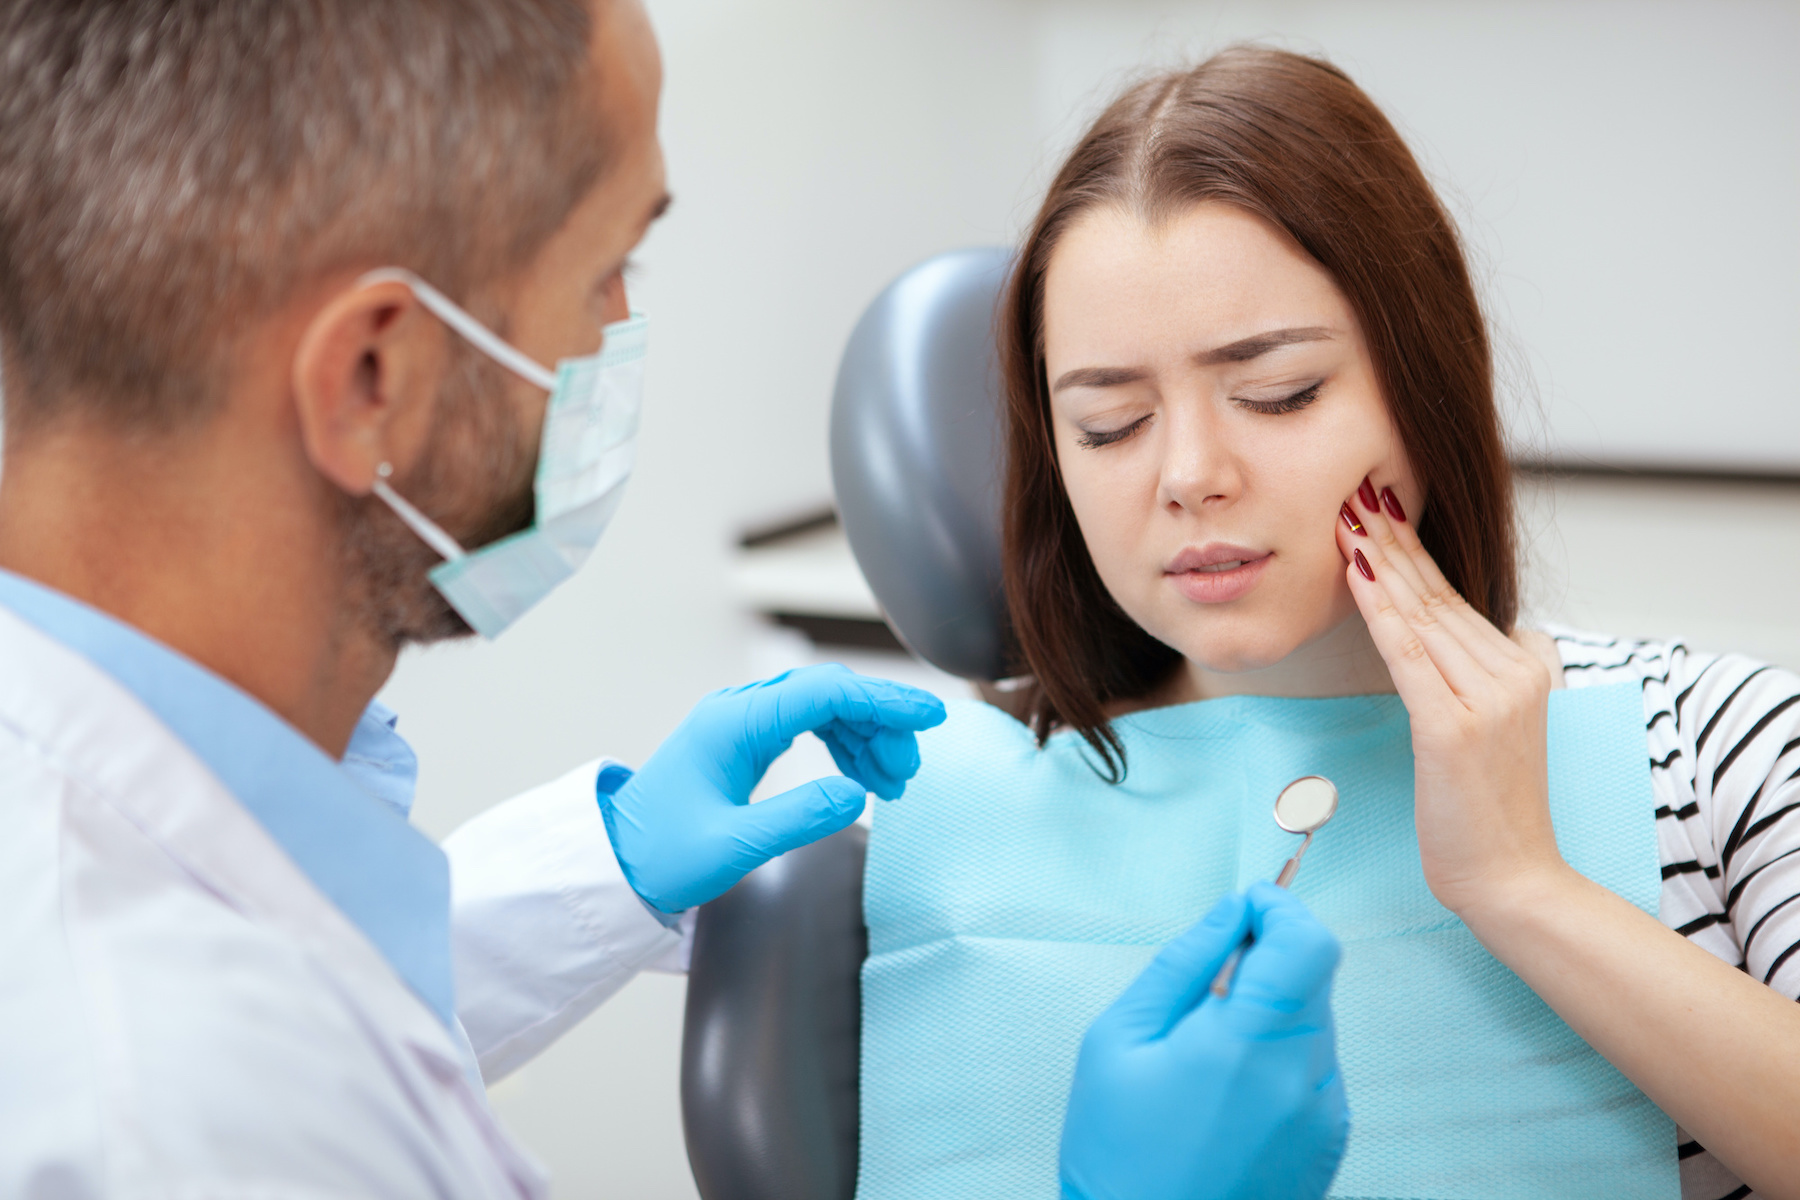 Is This Happening To You? You May Be Having A Dental Emergency